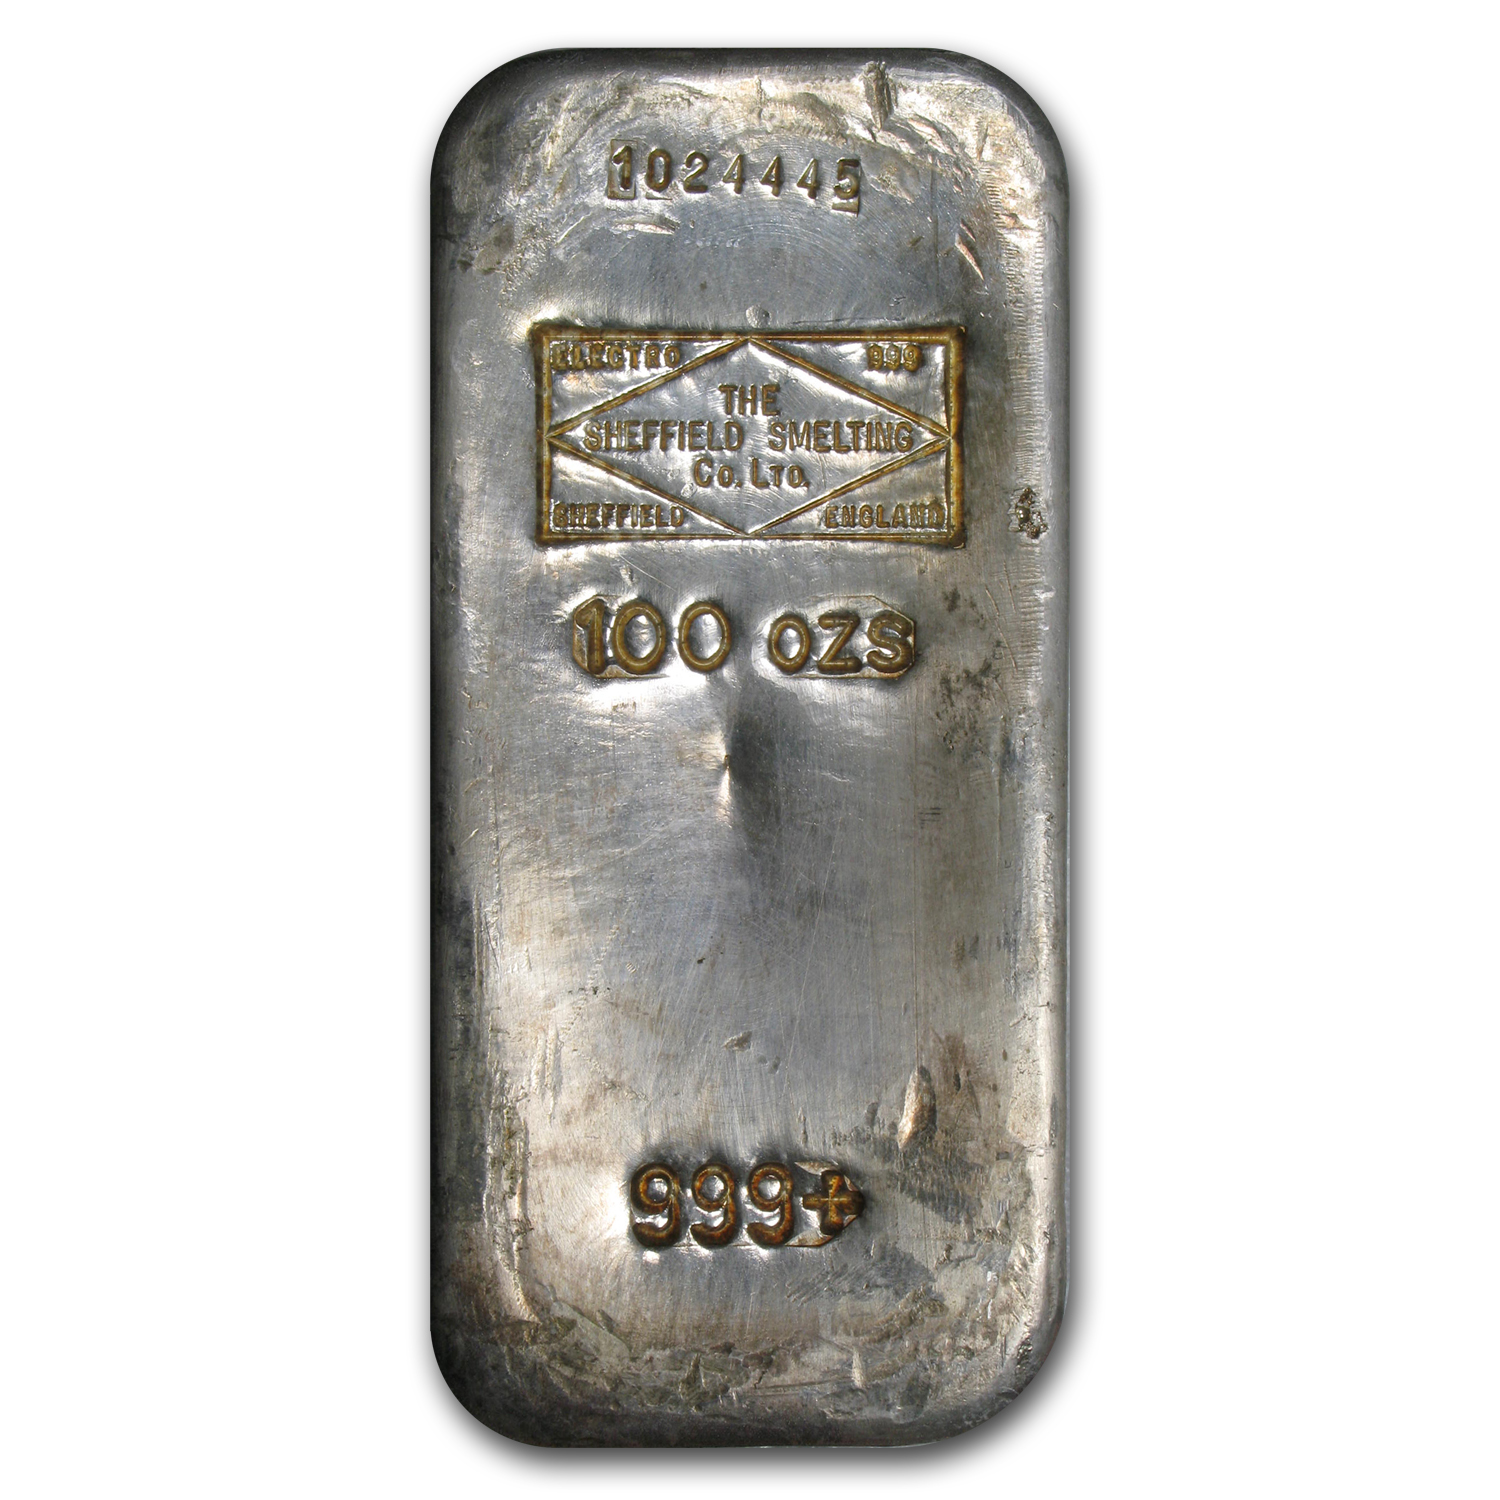 100 oz Silver Bar - Sheffield Smelting Co. Ltd